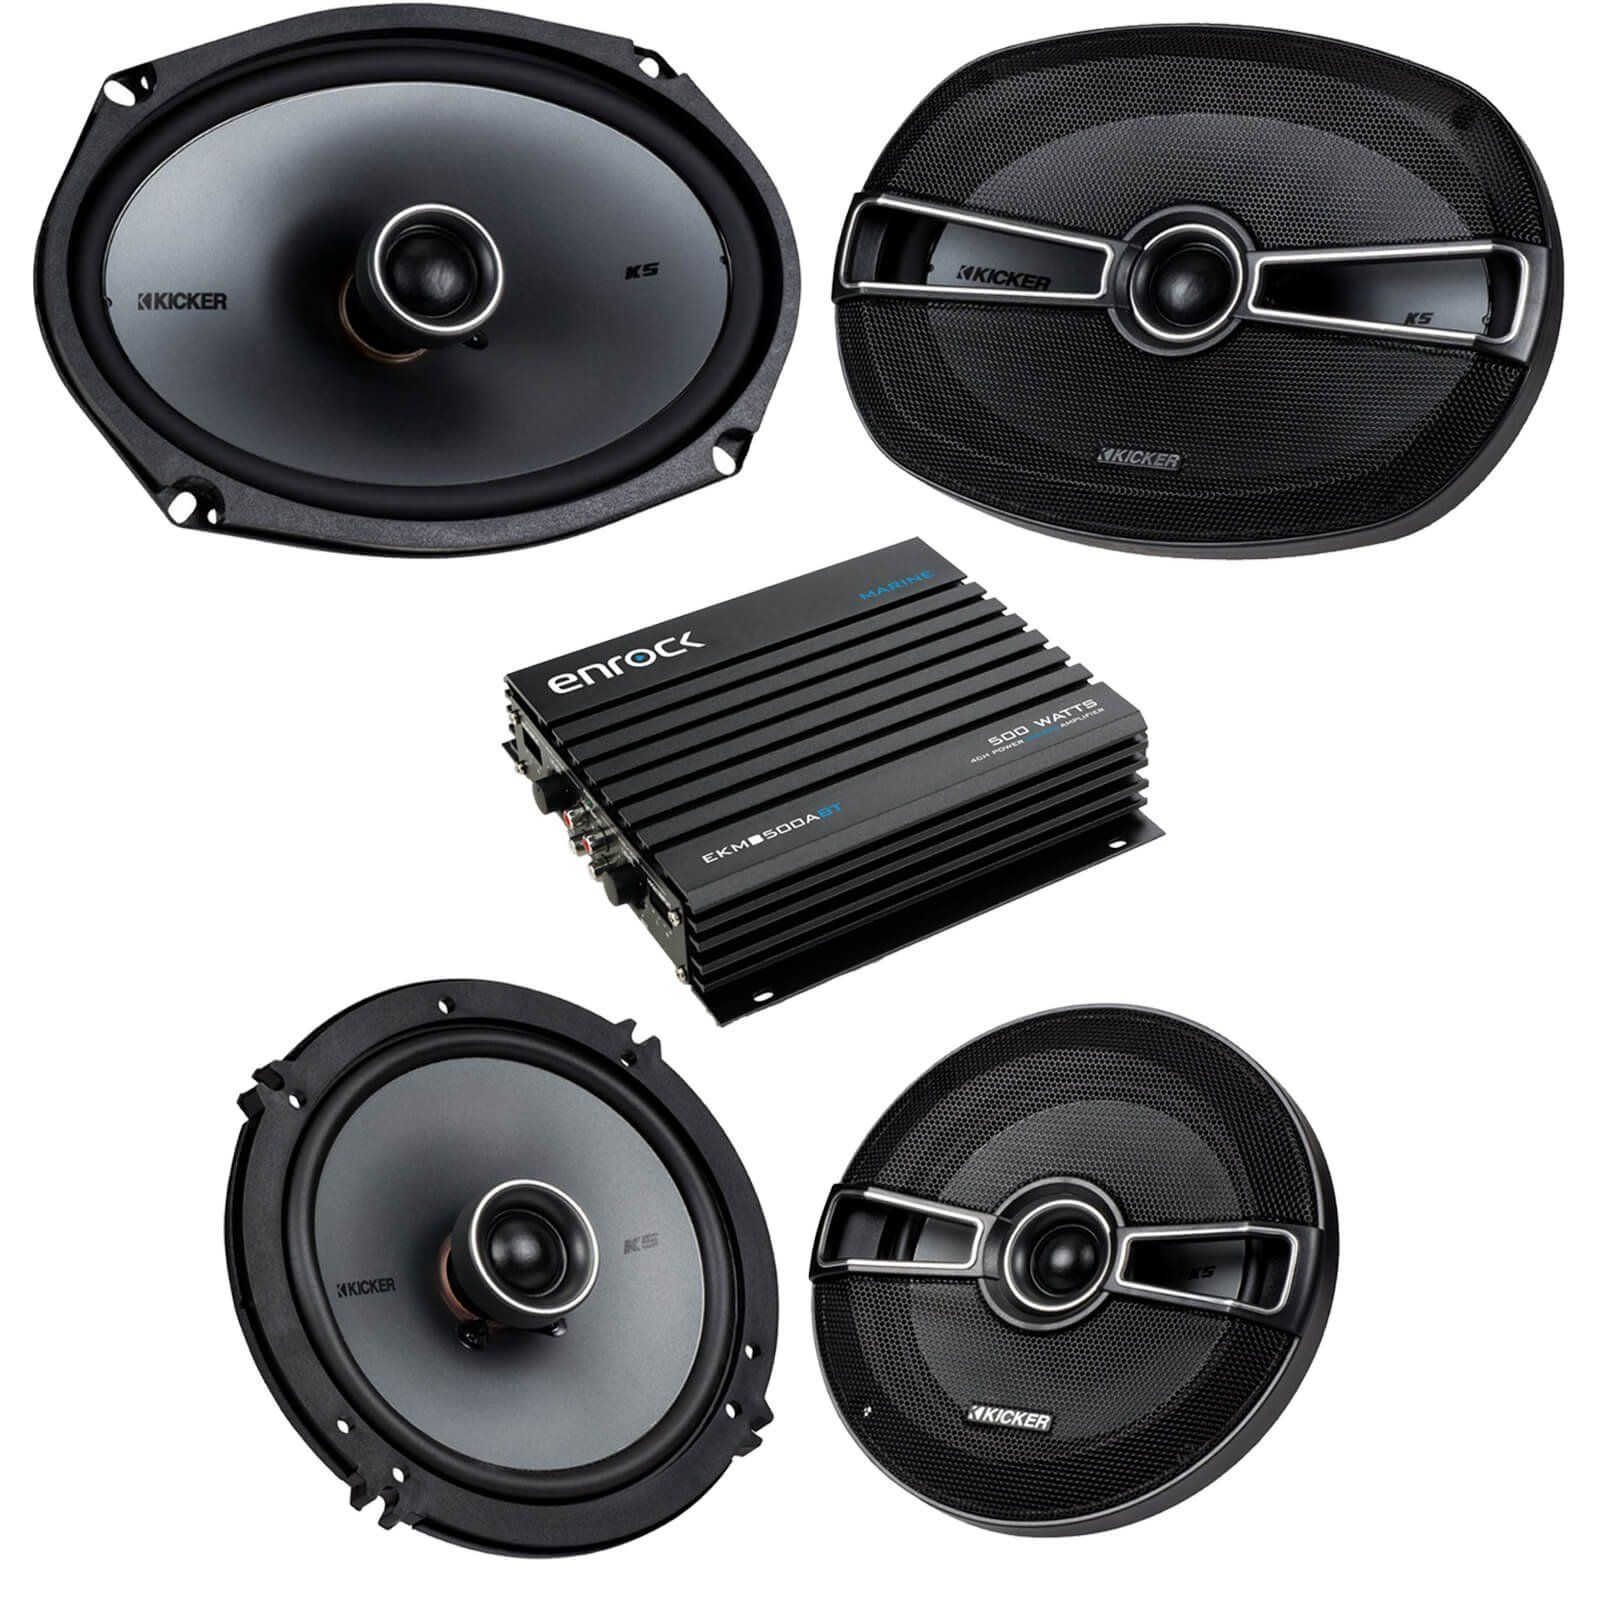 small resolution of car speaker bluetooth streming set bundle combo with 2 kicker 41ksc654 6 5 inch 2 way vehicle stereo speakers 2 kicker 41ksc694 6x9 car speaker system